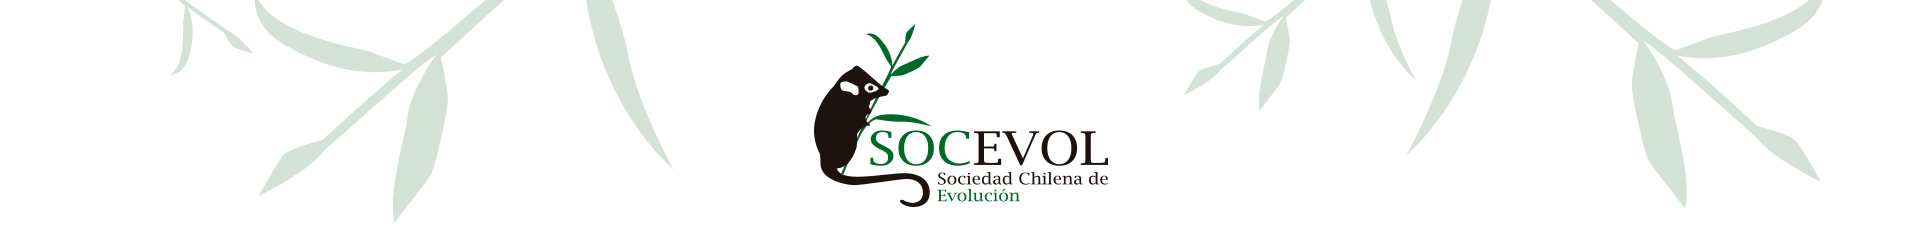 Sociedad Chilena de evolution